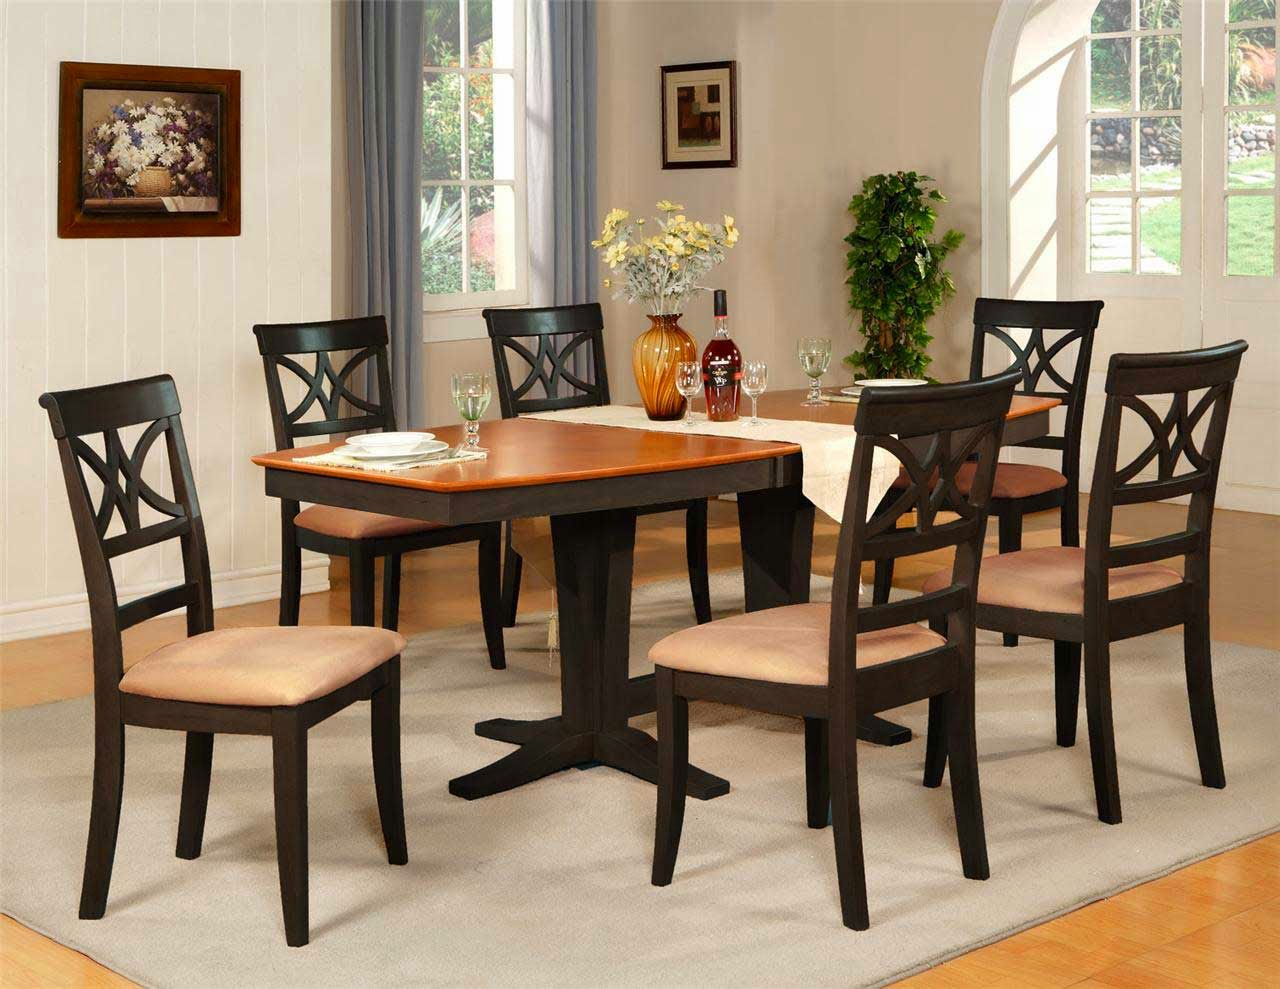 Dining room table centerpiece ideas for Dining room table for 2